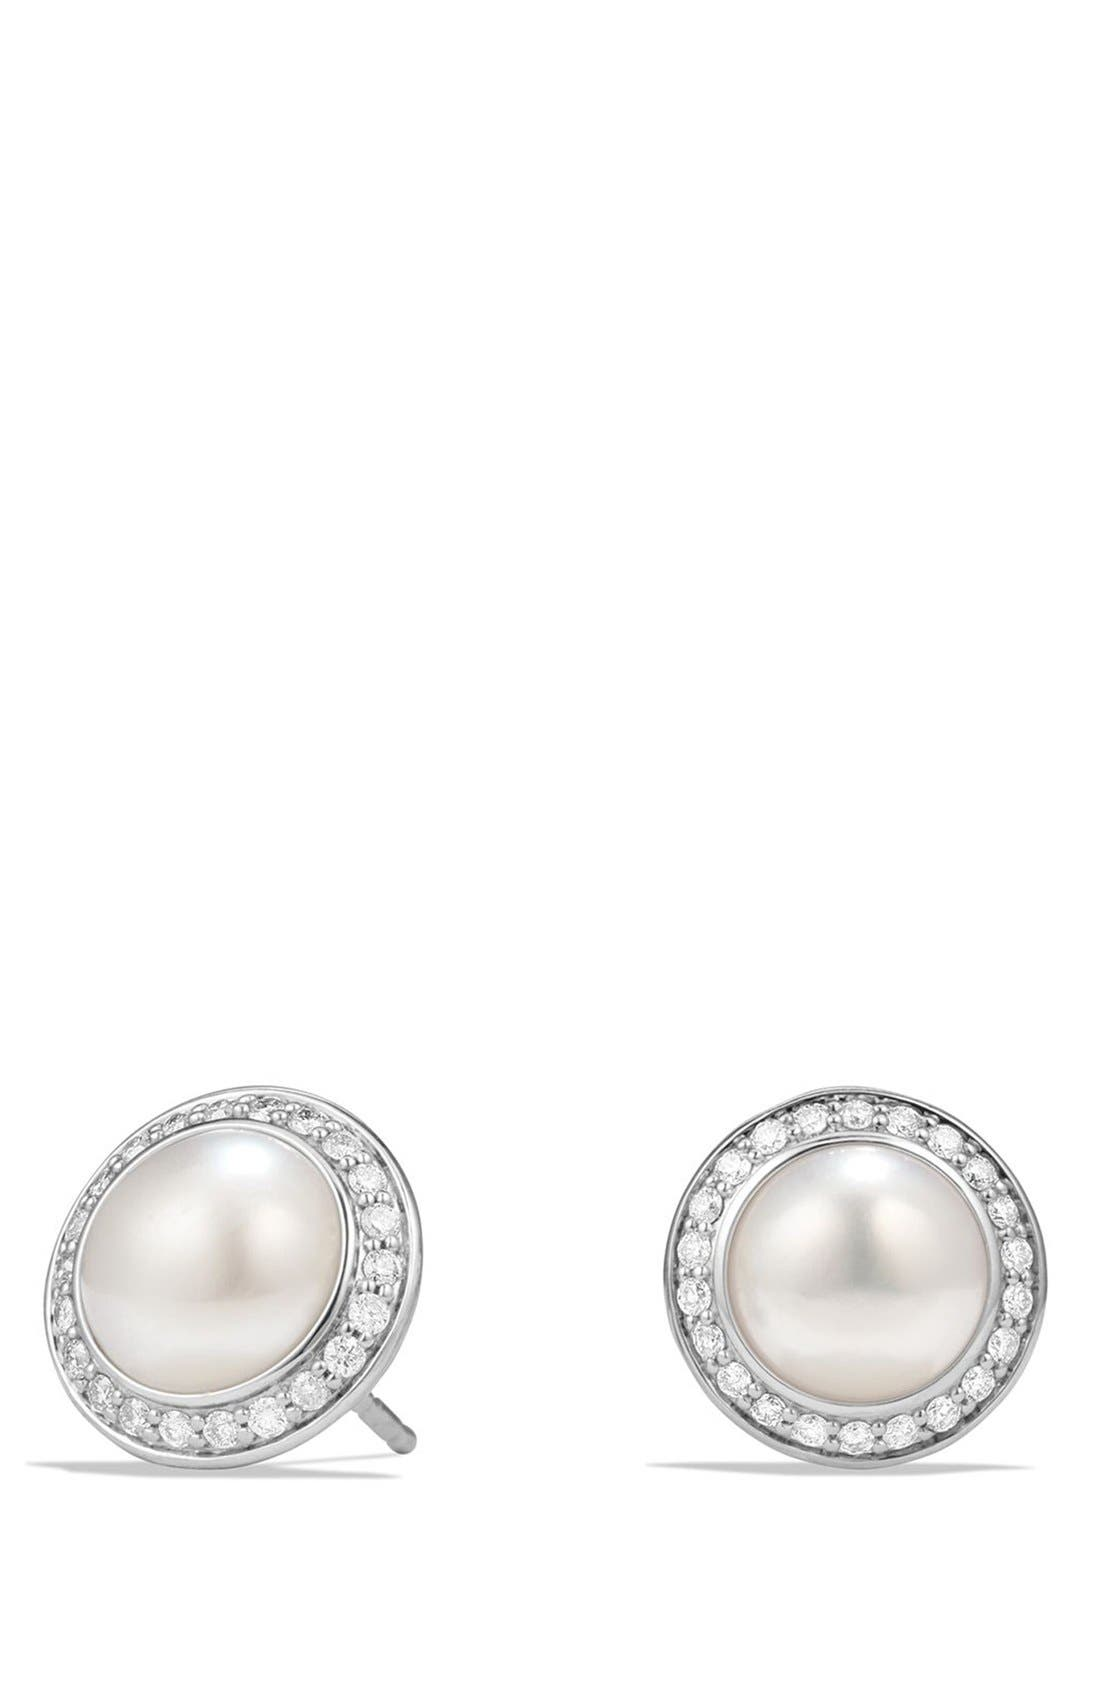 'Cerise' Petite Earrings with Pearls and Diamonds,                         Main,                         color, Silver/ Pearl